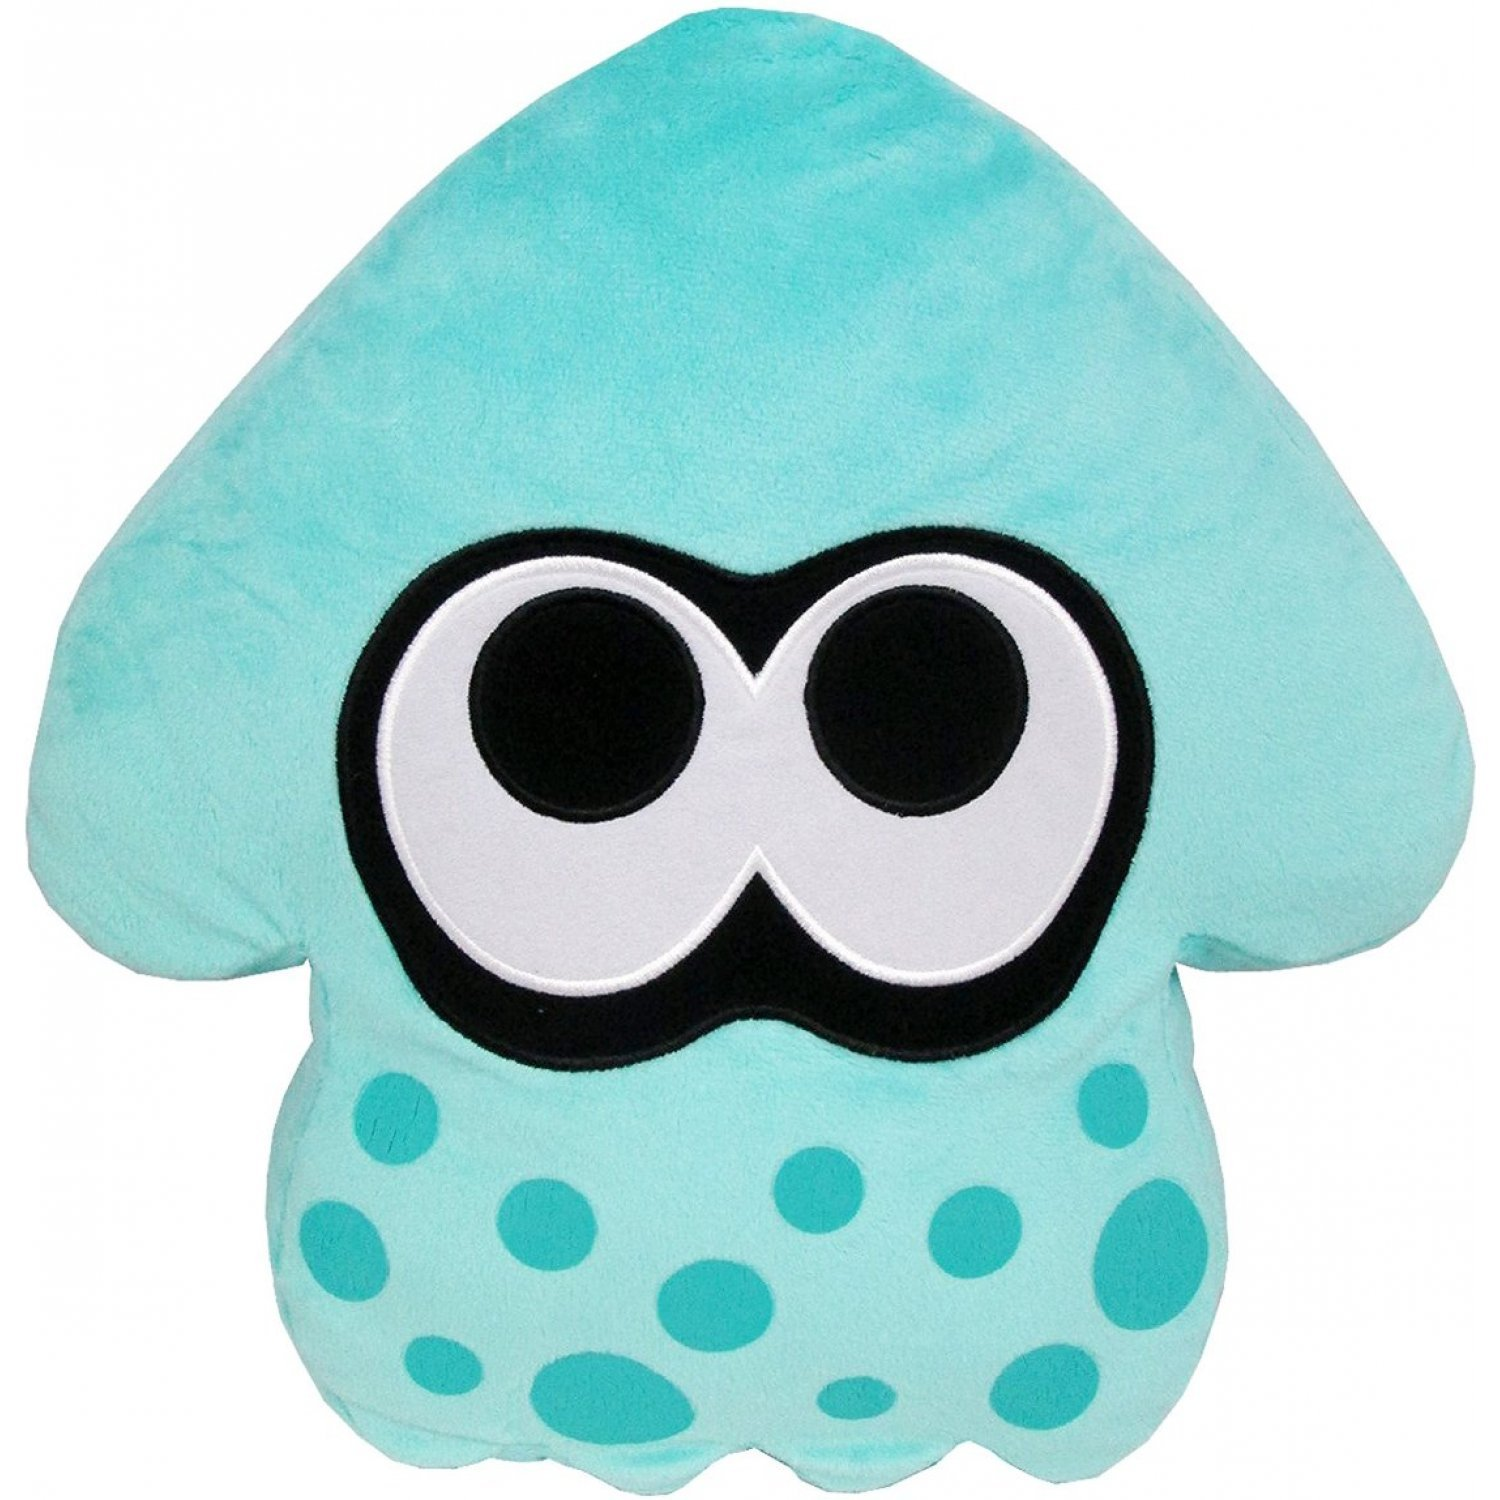 splatoon plush turquoise splatoon squid cushion re run. Black Bedroom Furniture Sets. Home Design Ideas